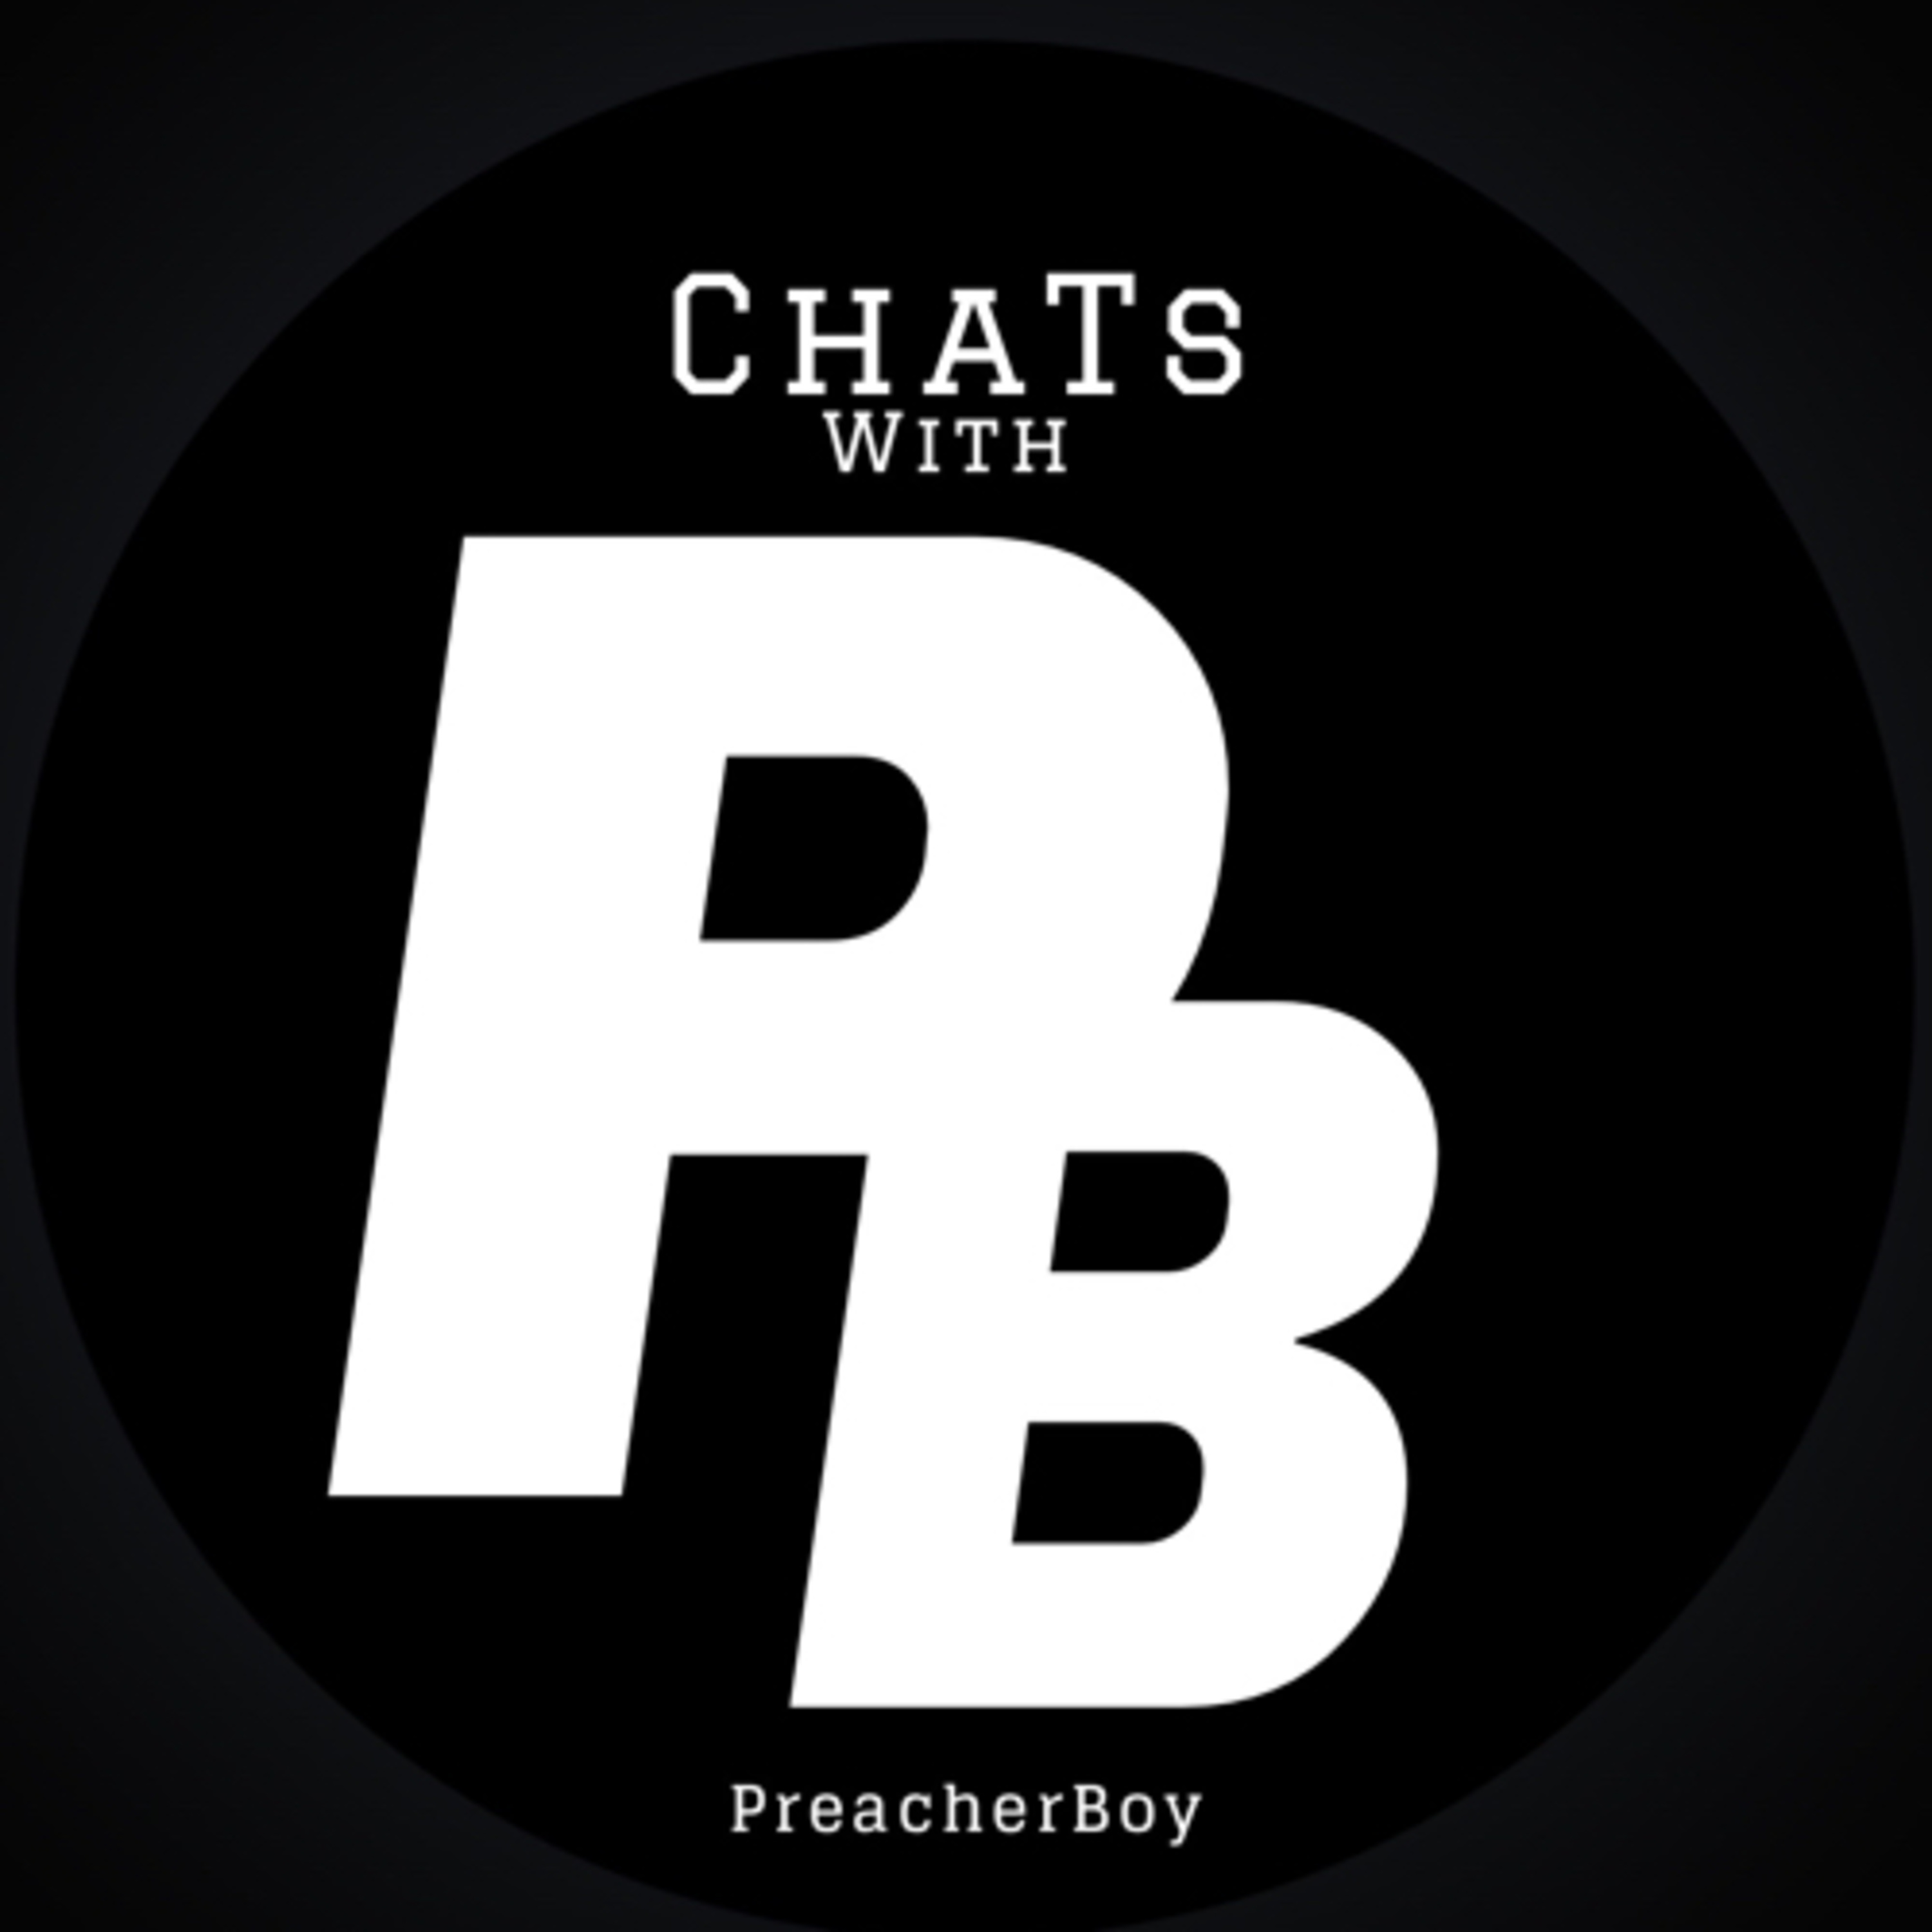 Chats with PreacherBoy